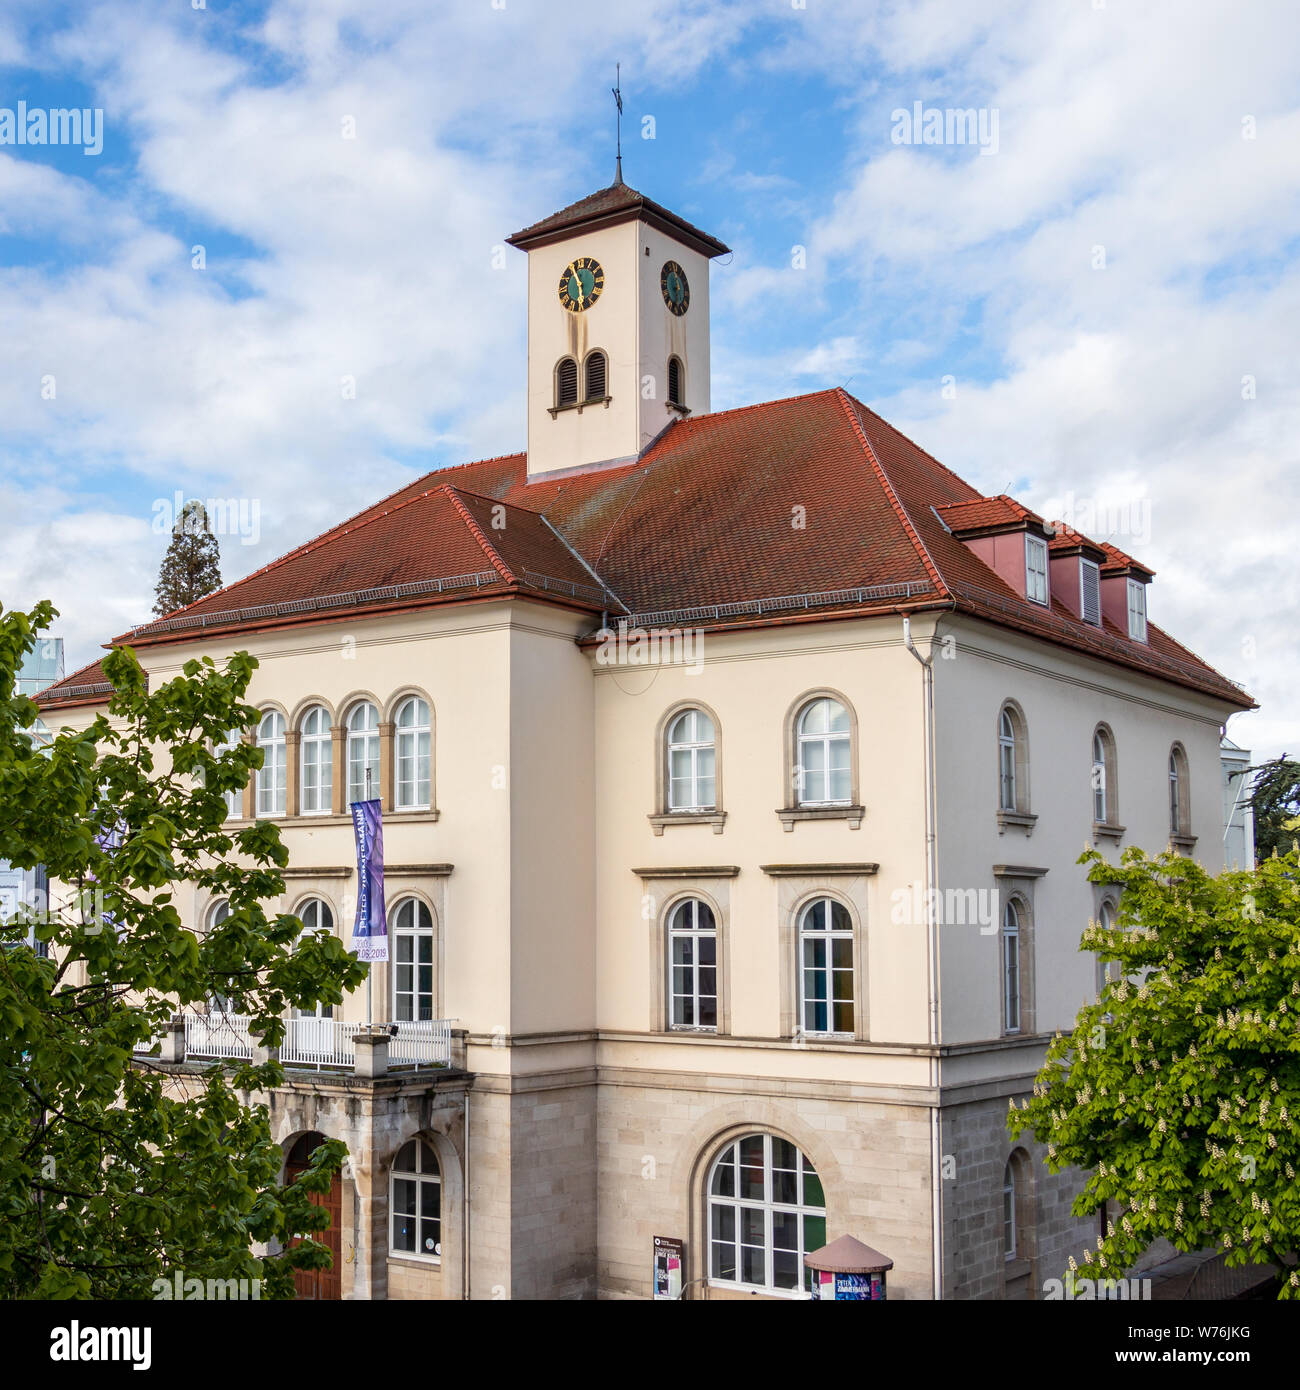 Sindelfingen, Baden Wurttemberg/Germany - May 11, 2019: Detail view on City Gallery building, Stadtgalerie. Stock Photo